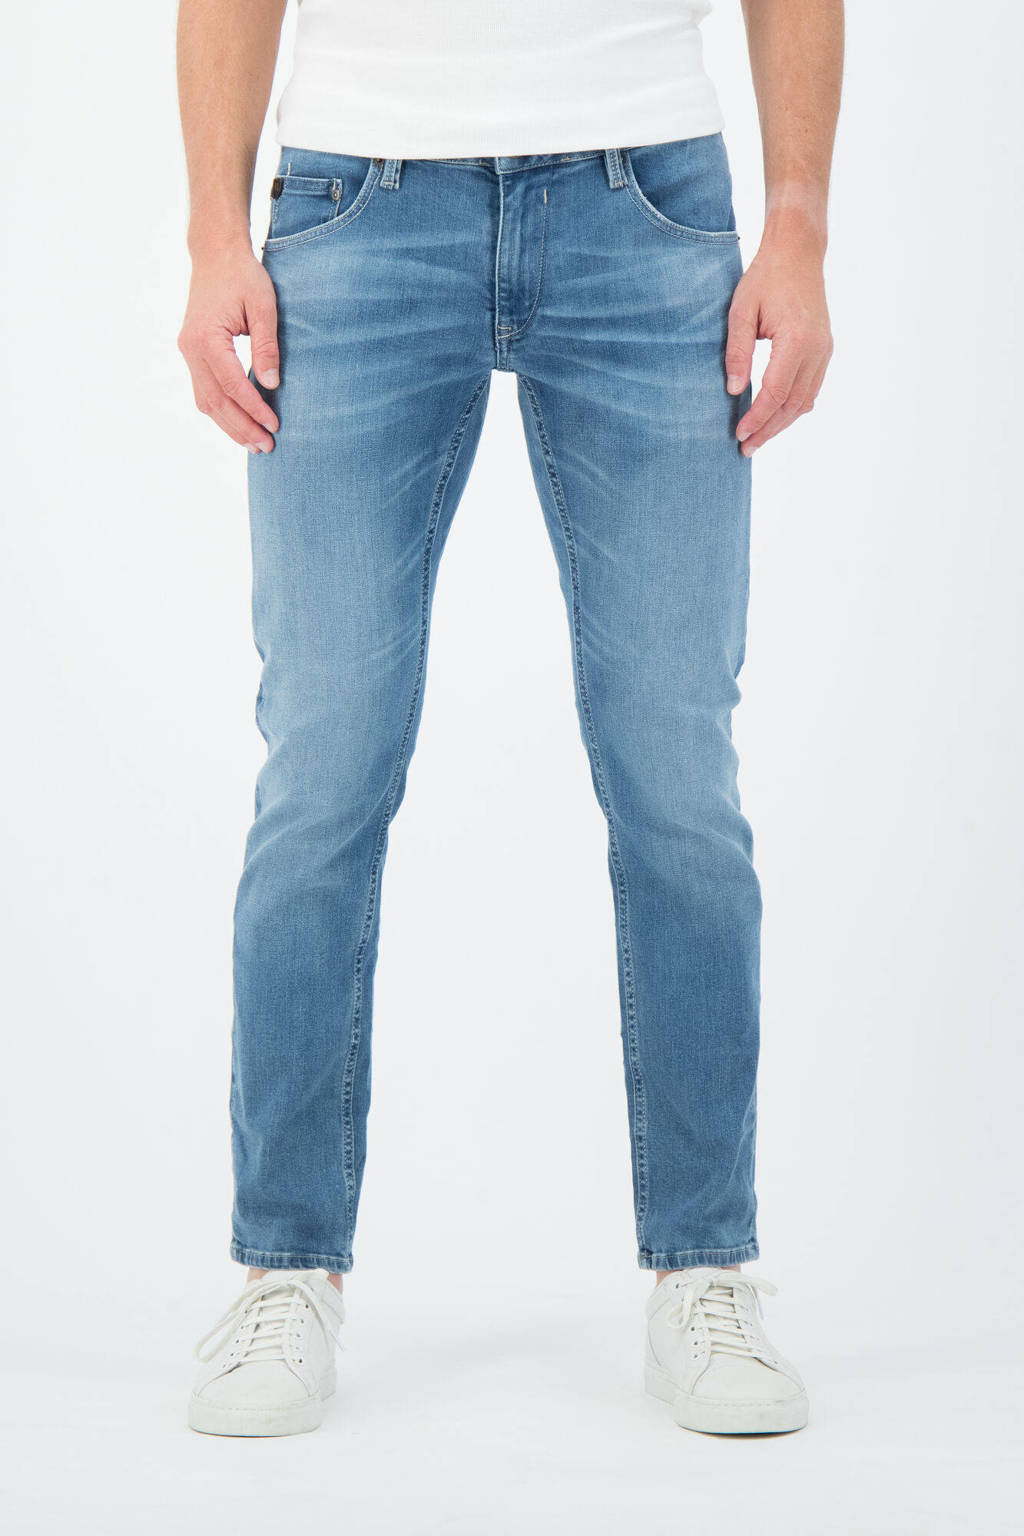 Garcia tapered fit jeans Russo 611 light used, Light used